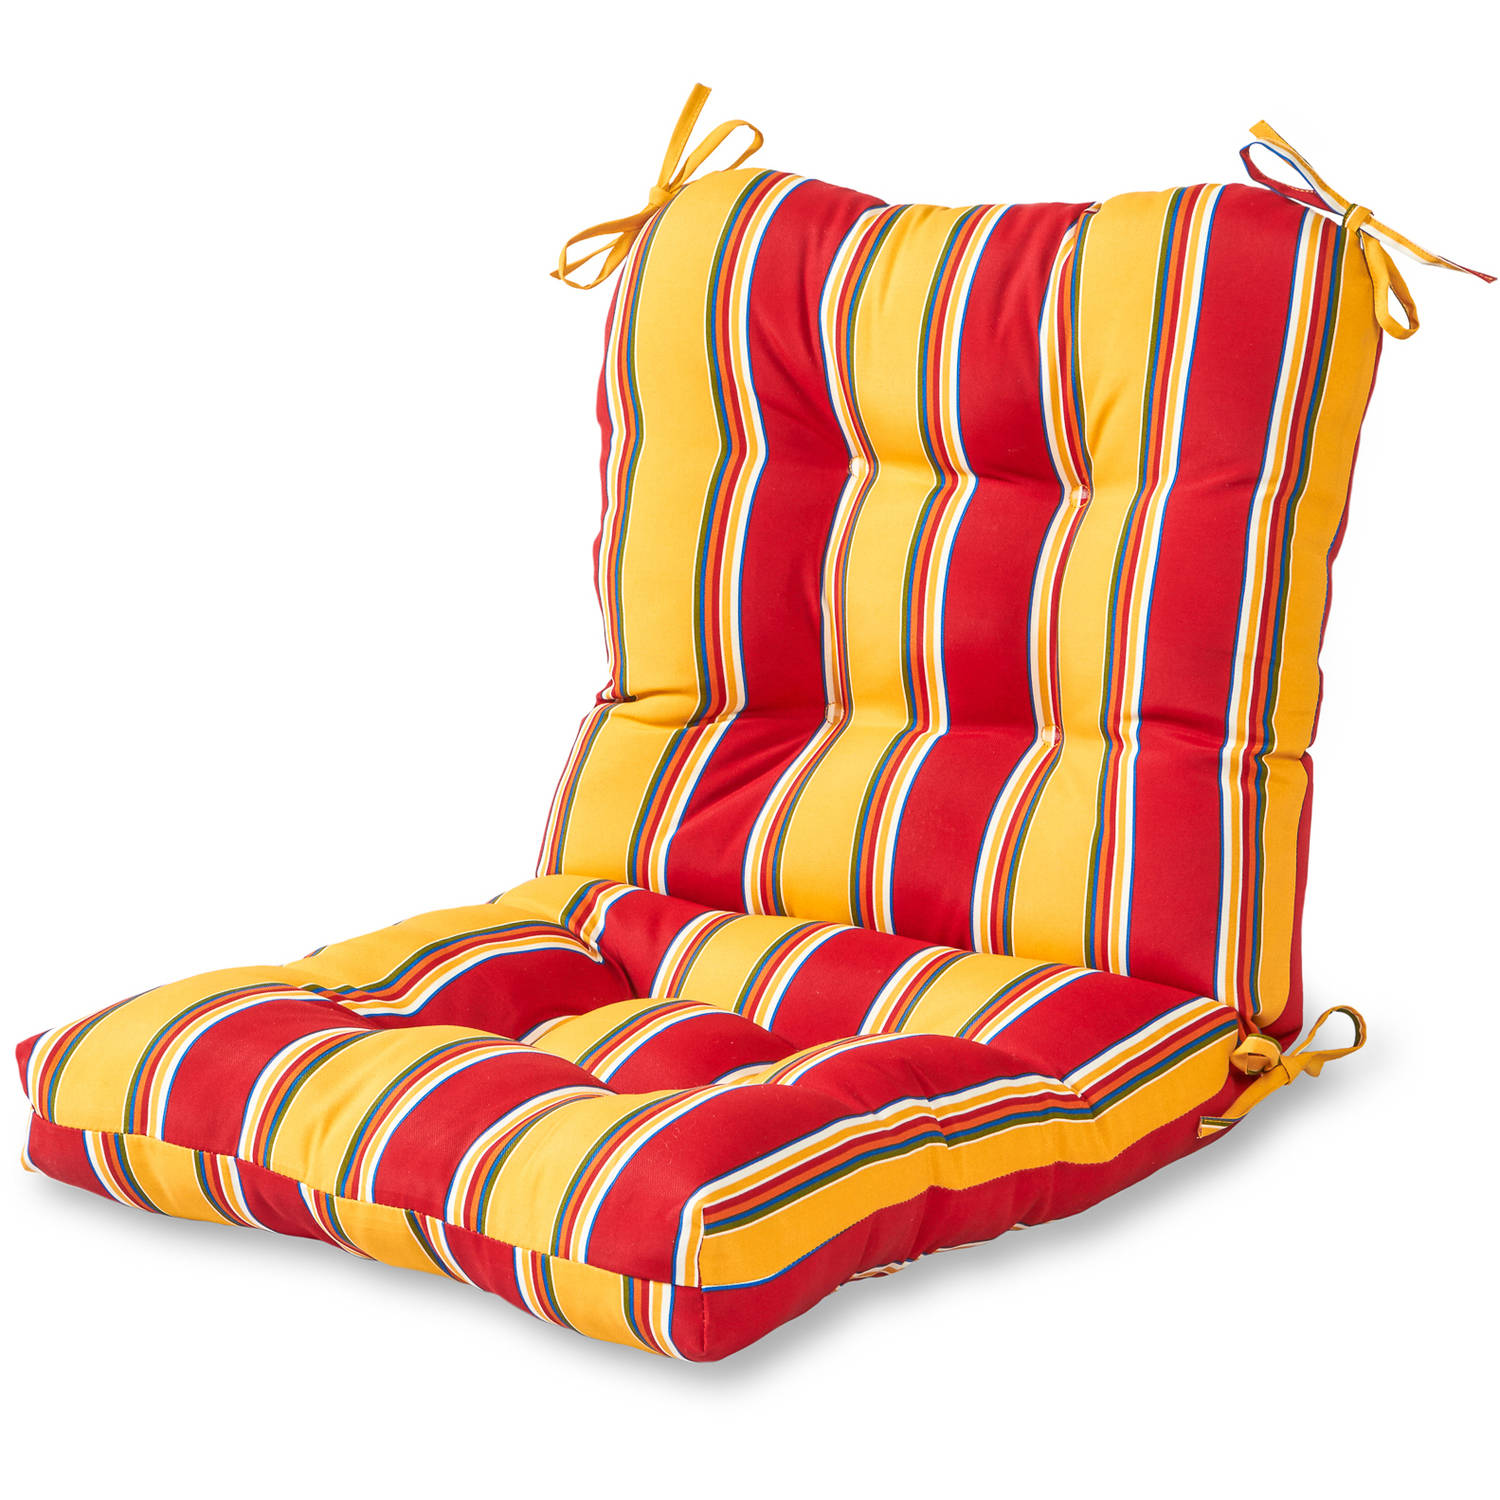 Greendale Home Fashions Outdoor Seat/Back Chair Cushion, Carnival Stripe